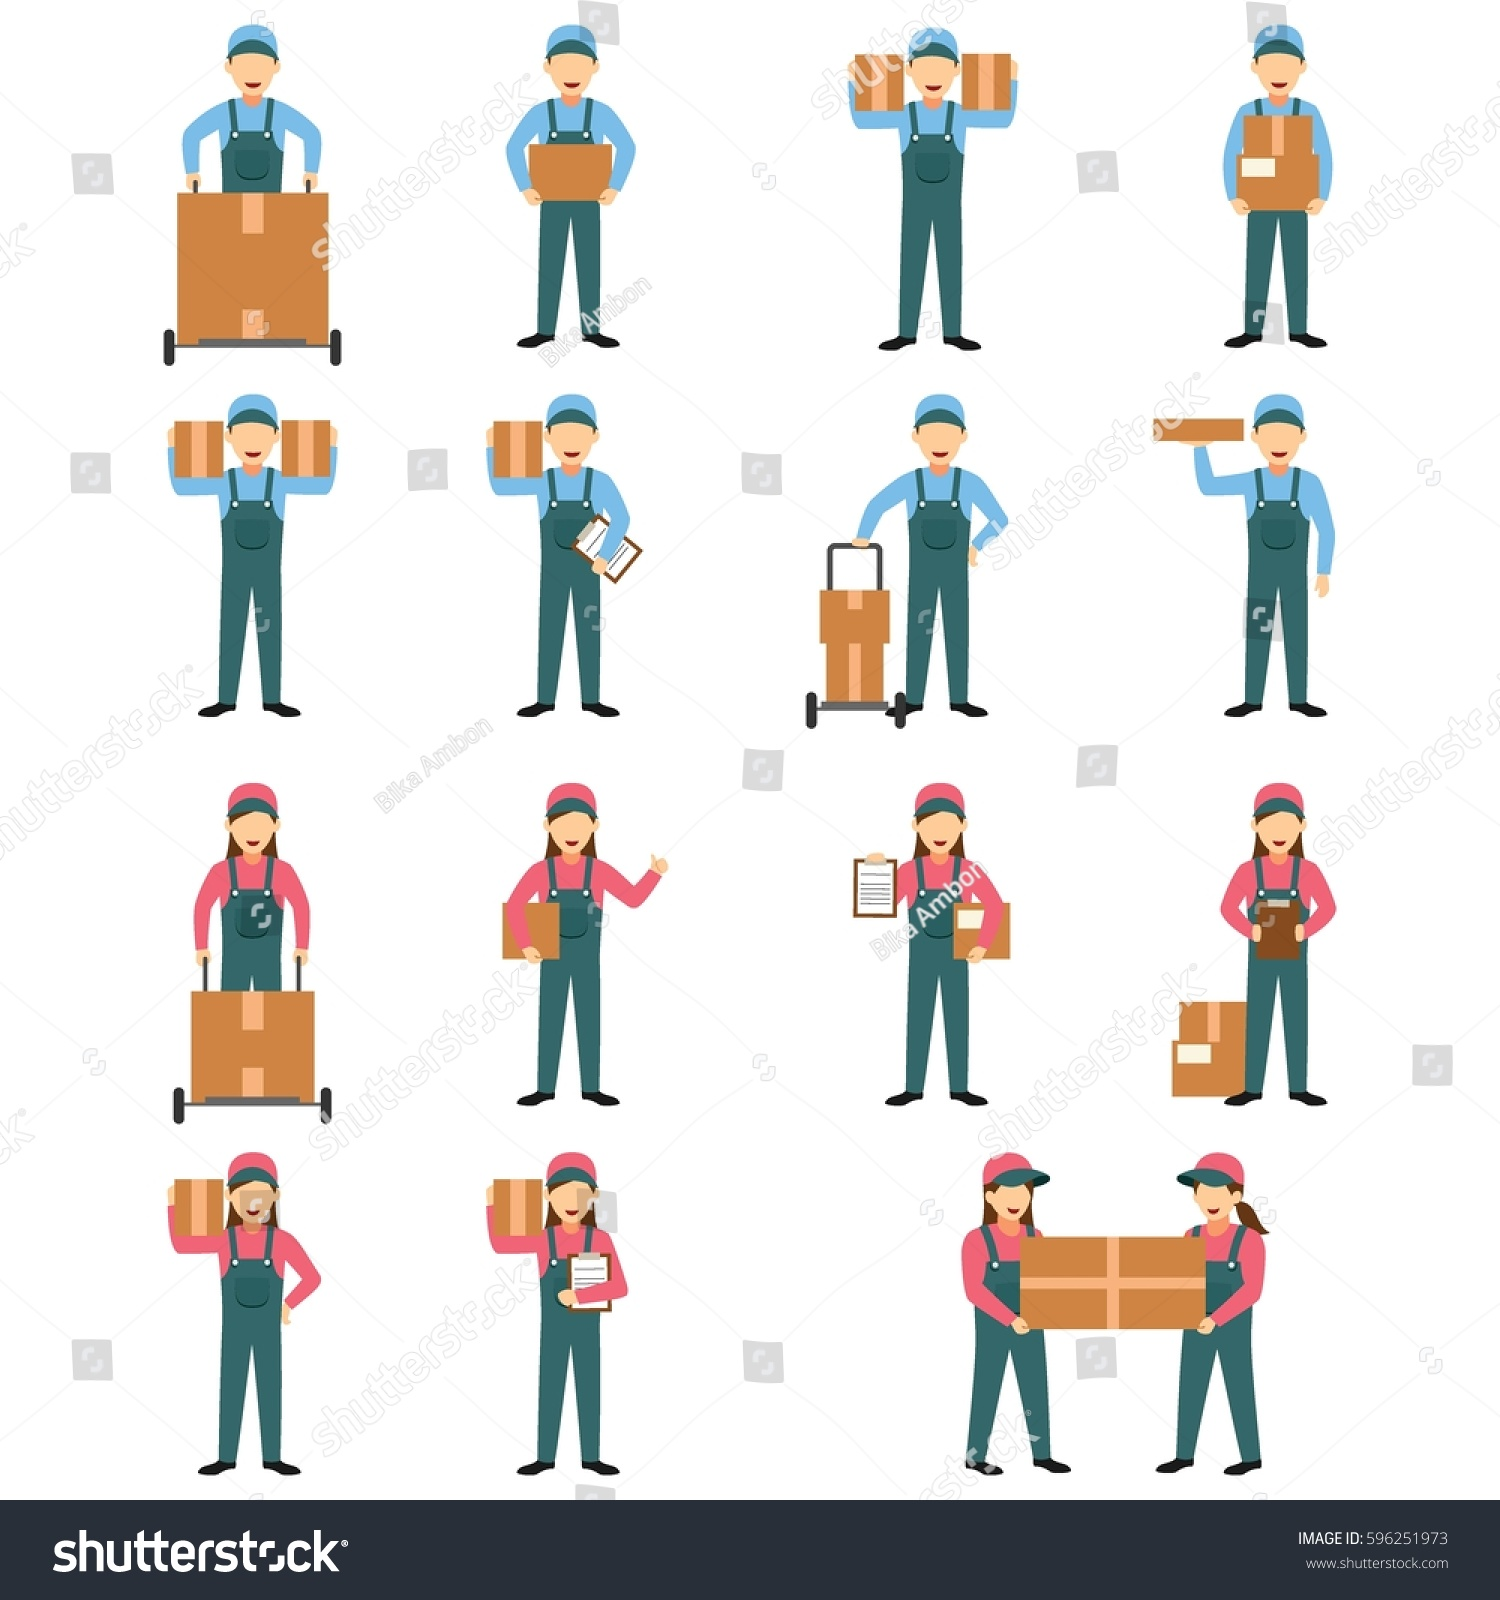 Character Design Set : Set delivery character design vector stock